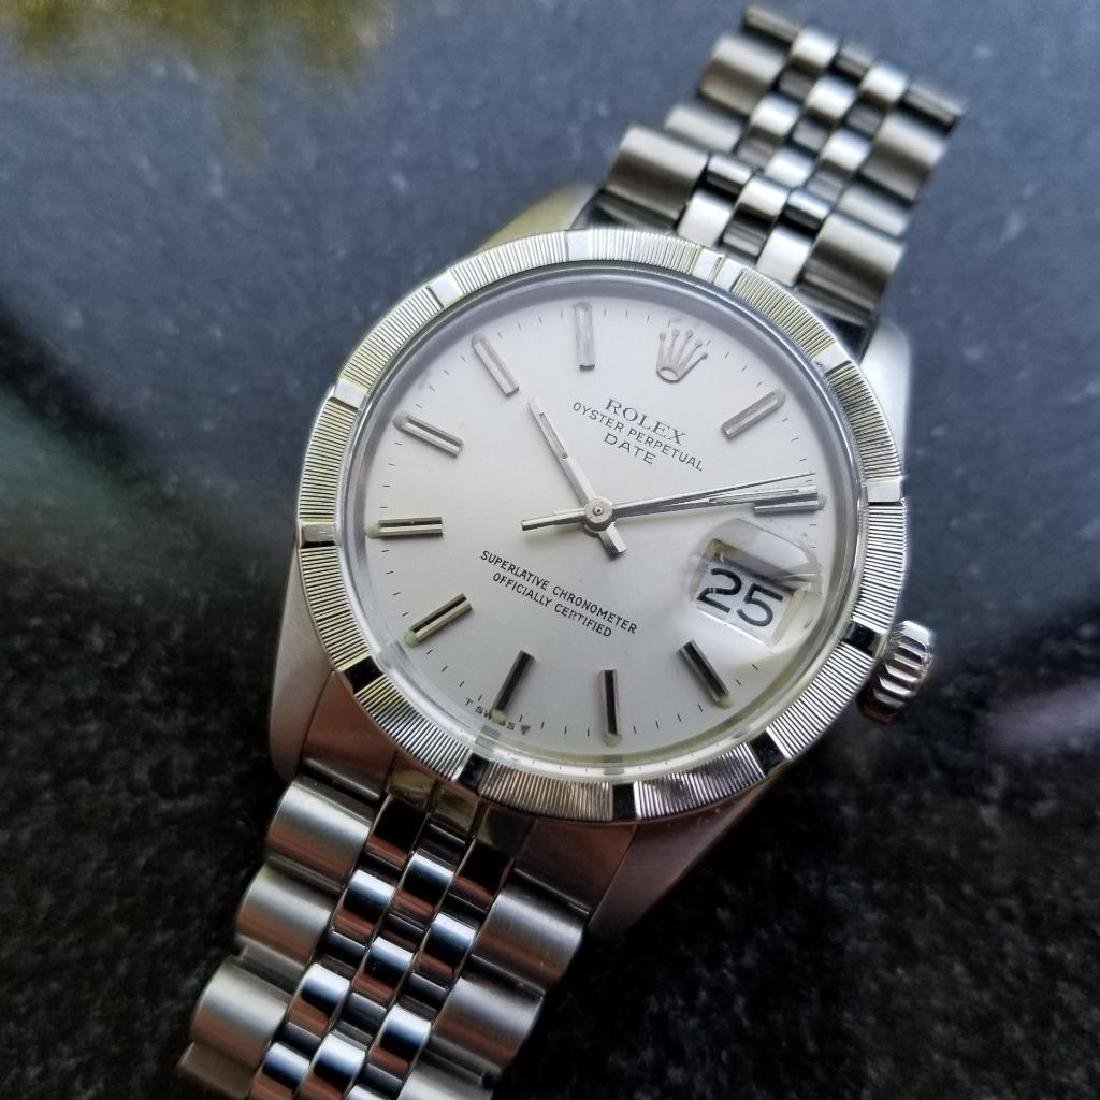 Rolex Oyster Perpetual 1501 Date Vintage 1977 Auto 35mm - 2